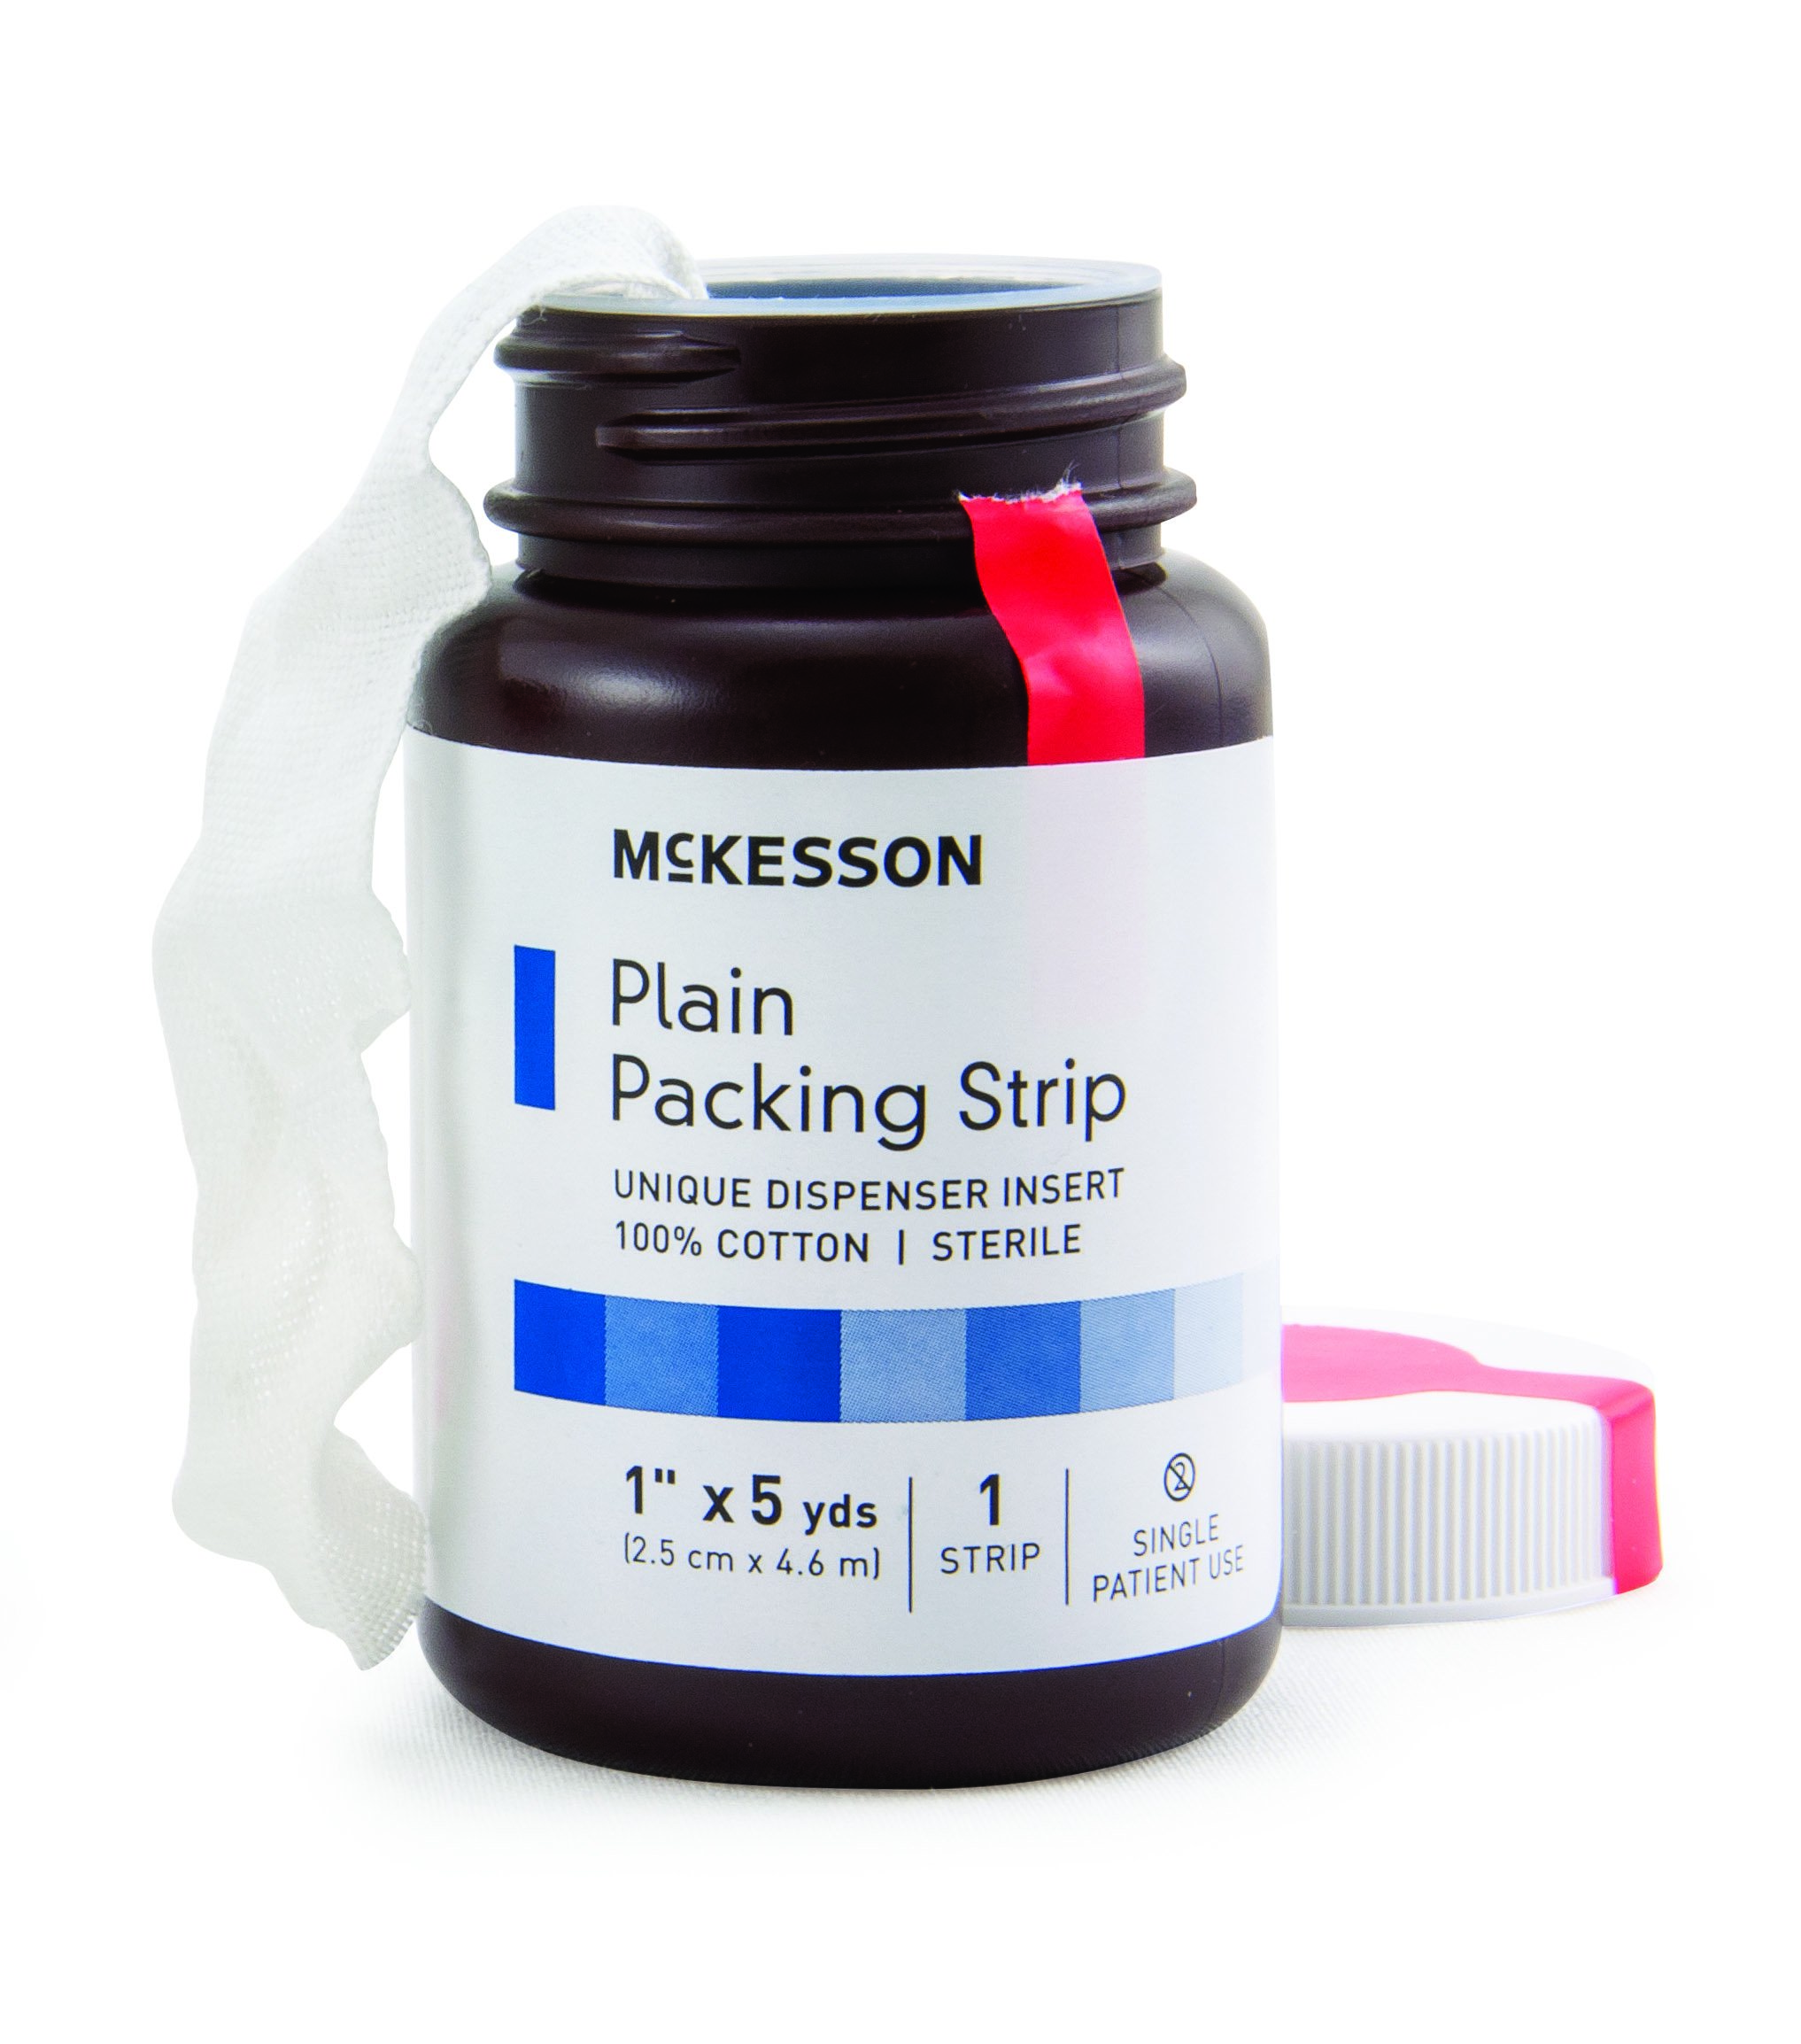 Image Of Wound Packing Strip McKesson Cotton Non-impregnated 1 Inch X 5 Yard Sterile